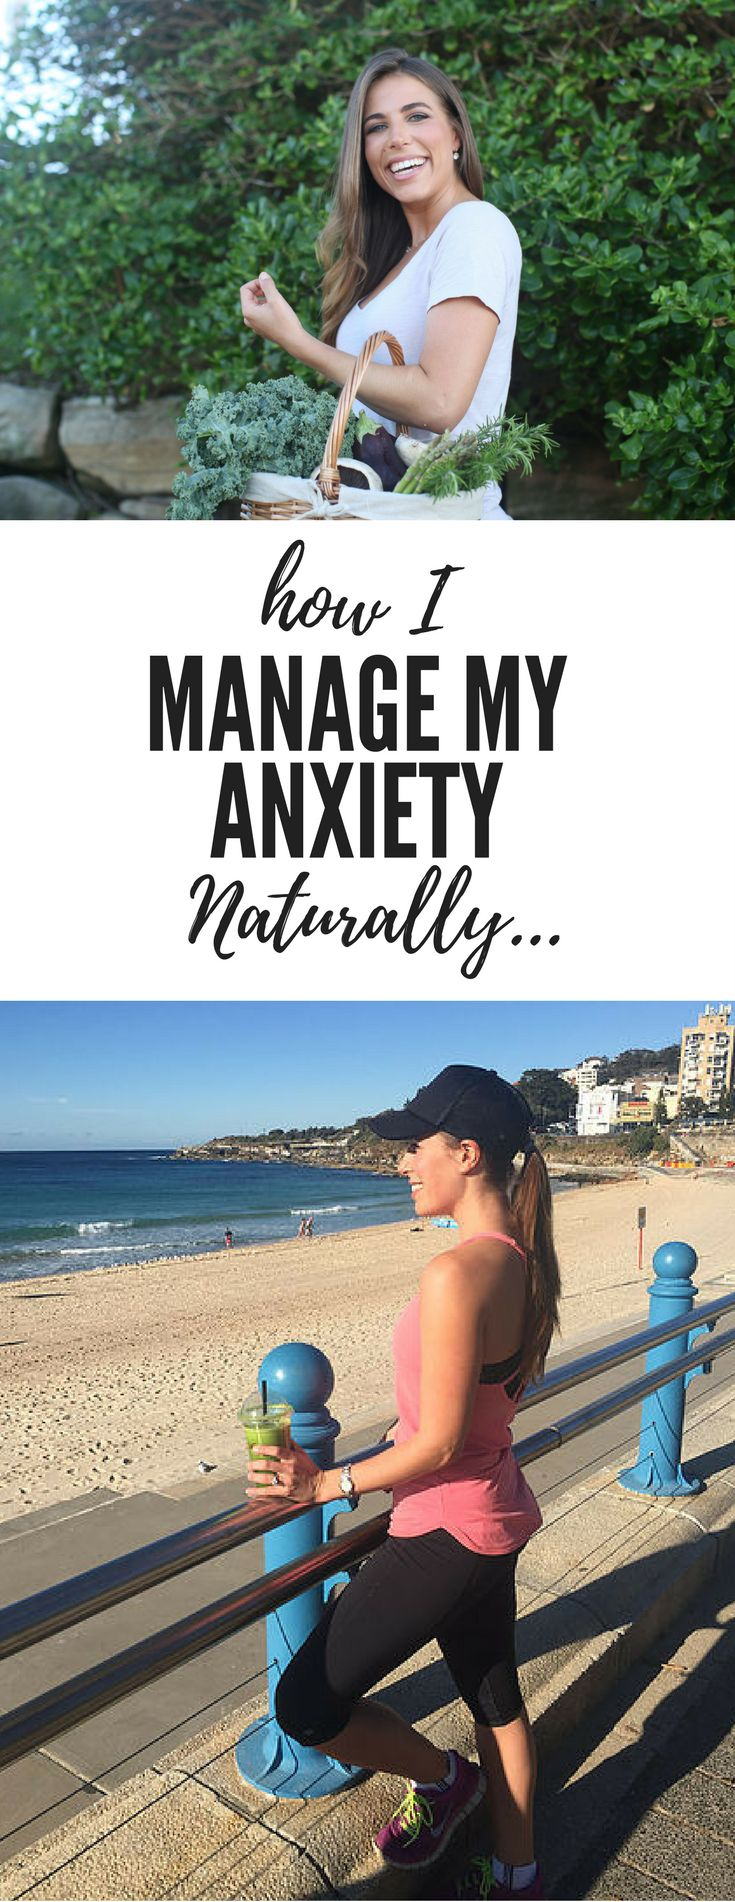 How I manage and treat my anxiety naturally - Lyndi Cohen